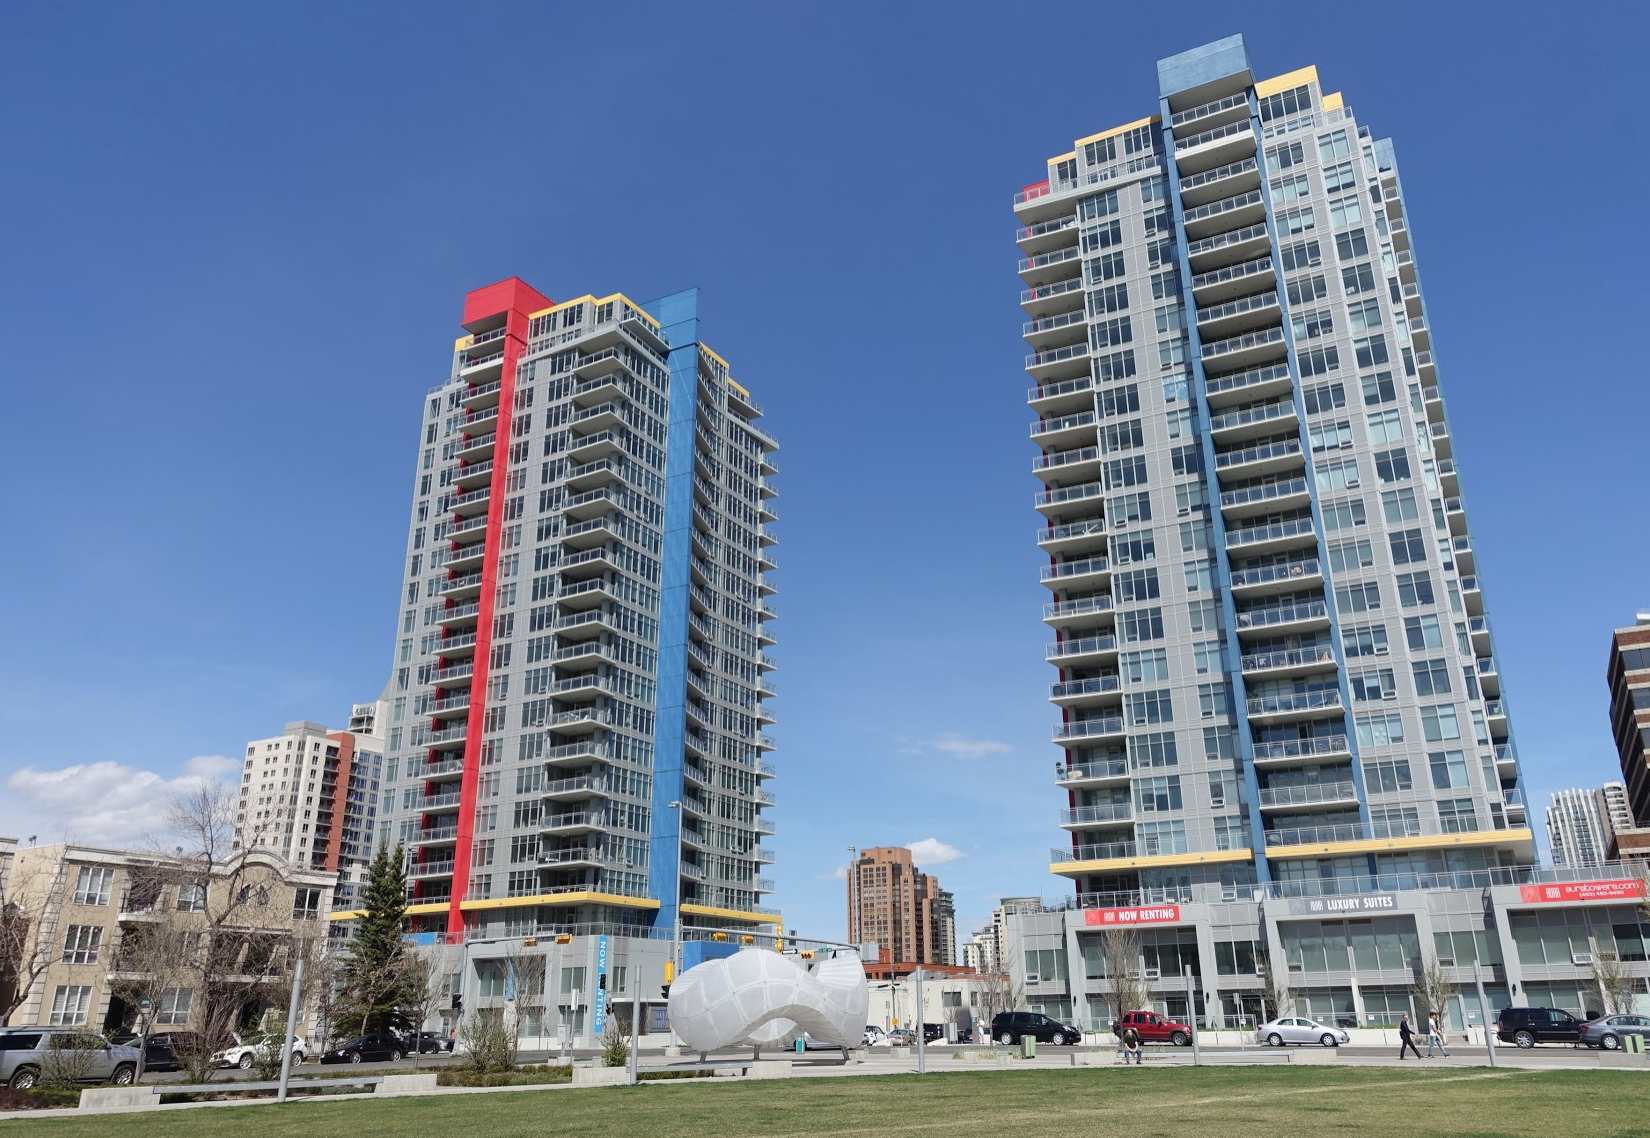 Calgary's Beltline community is home to 22,000+ residents and four pedestrian streets - 11th Avenue, 11th Street, First Avenue and 17th Avenue. Nashville has no City Centre community of this size and diversity.